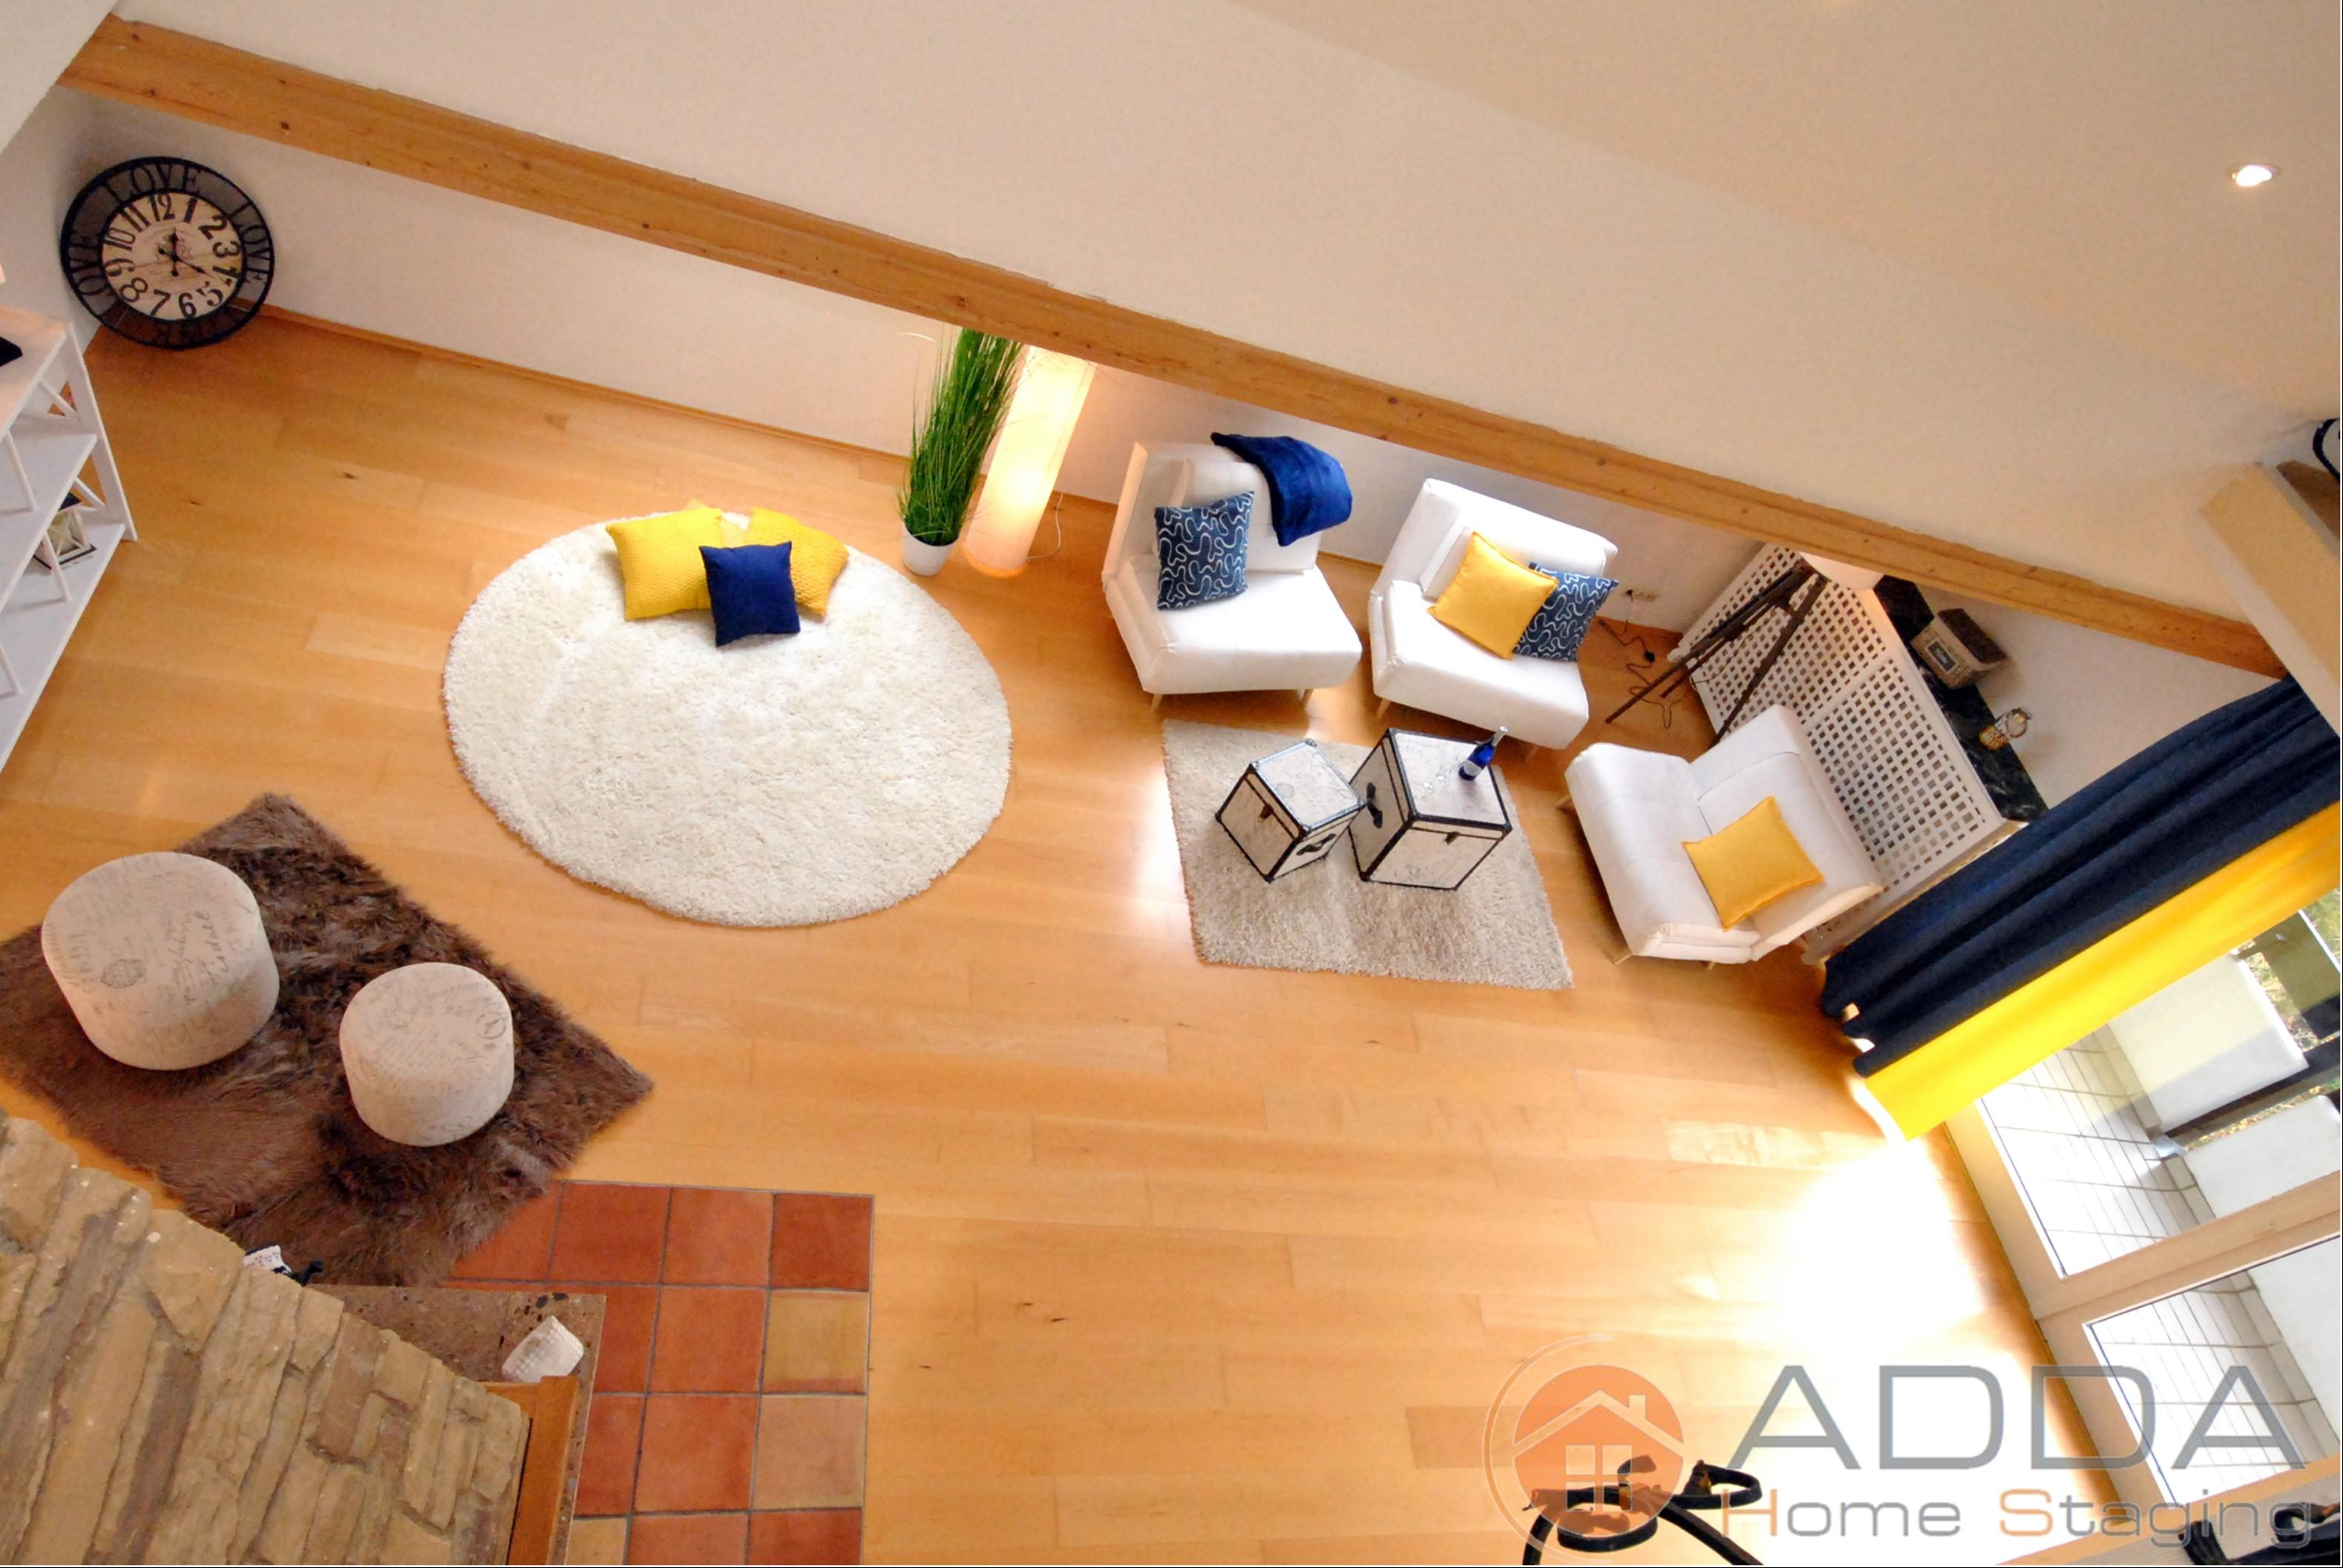 Wohnraum nach Home Staging #kissen ©ADDA Home Staging